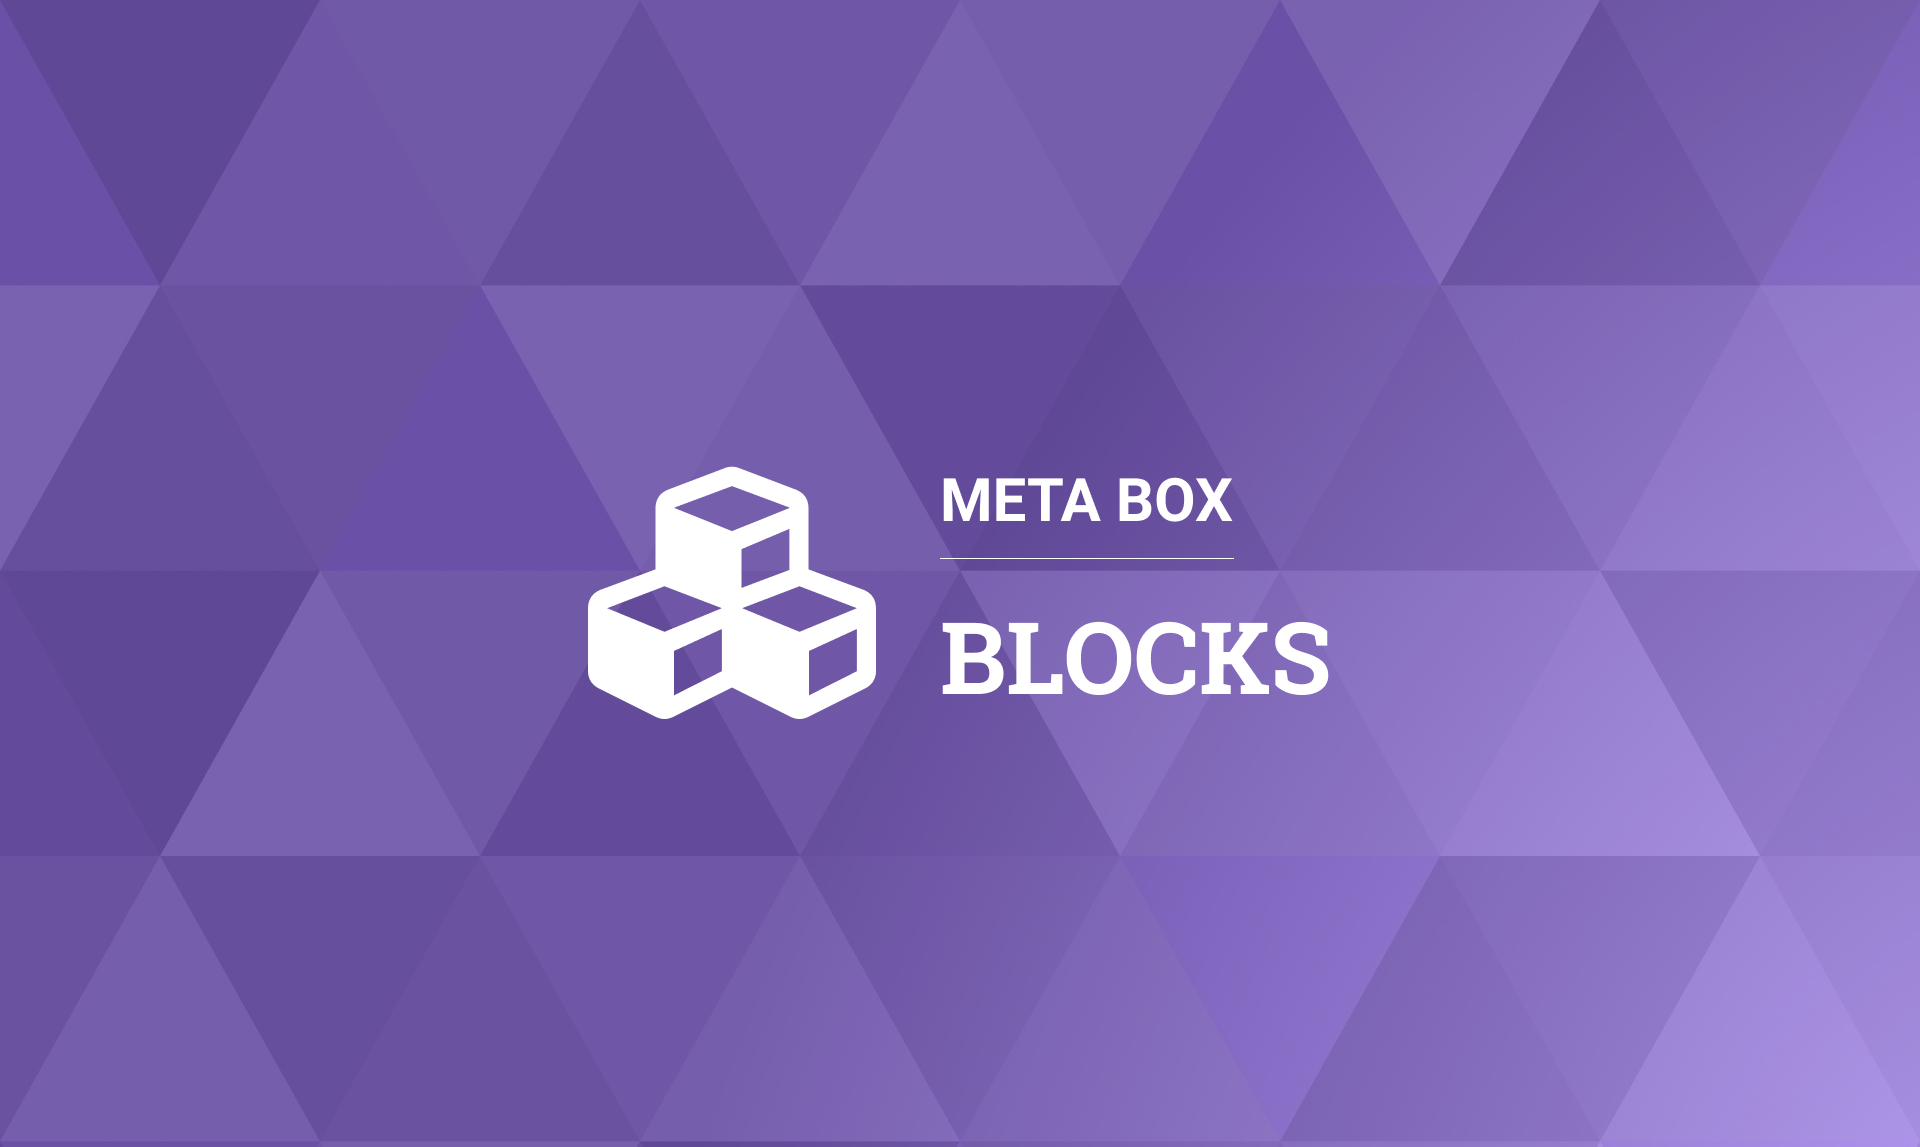 MB Blocks